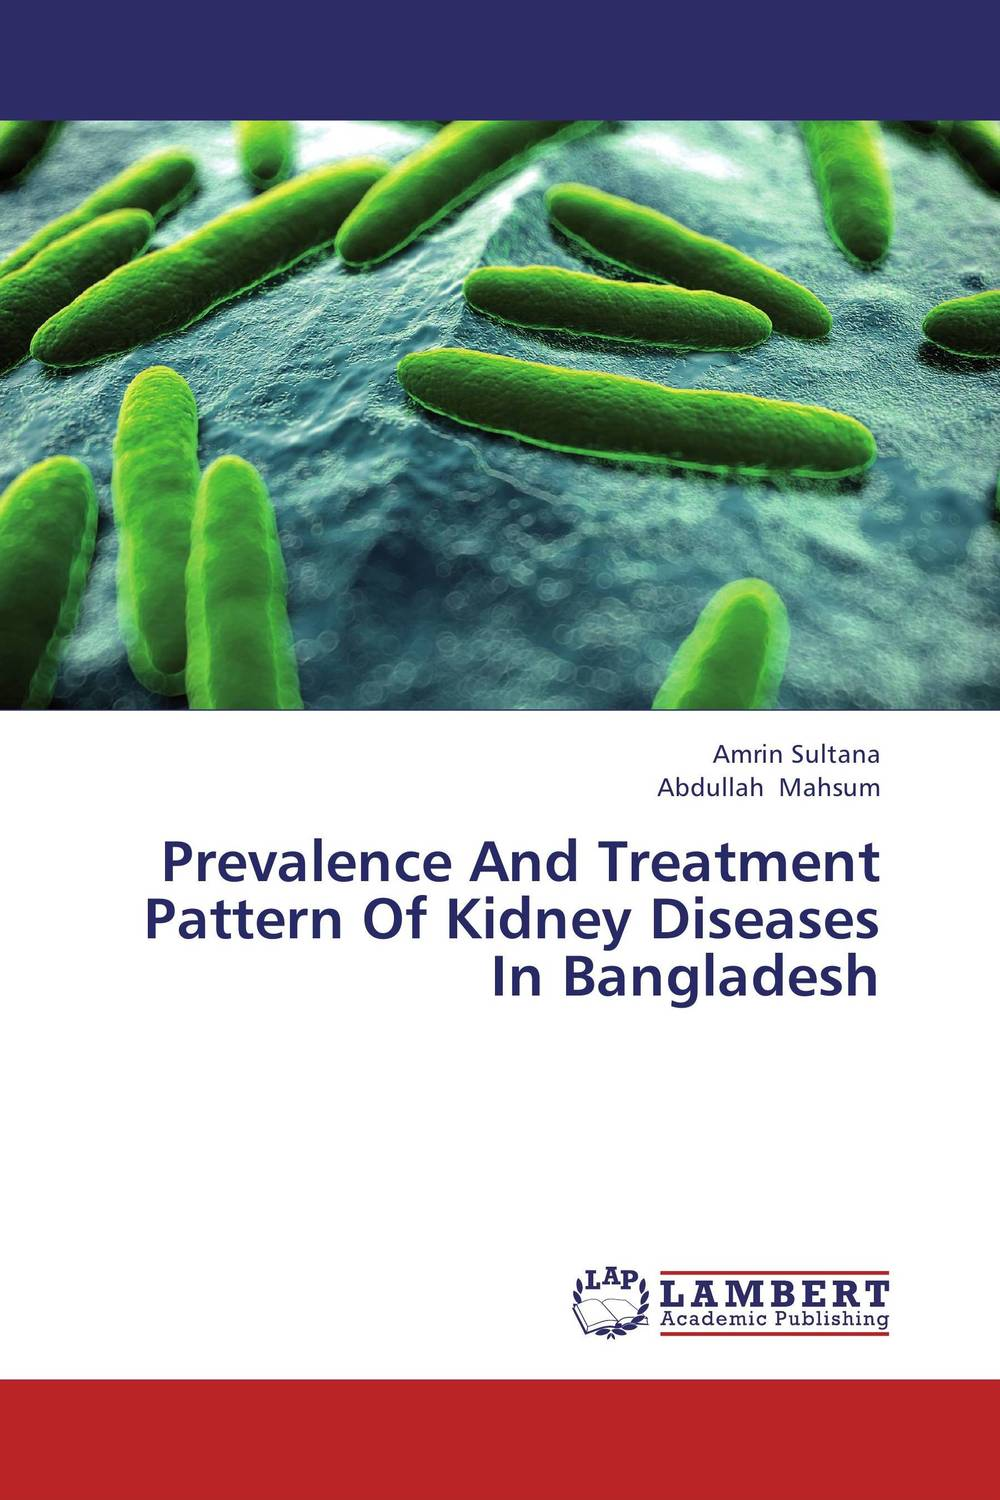 Prevalence And Treatment Pattern Of Kidney Diseases In Bangladesh medical kidney anatomy model of human medicine kidney ball section of teaching and training of special ureteral function